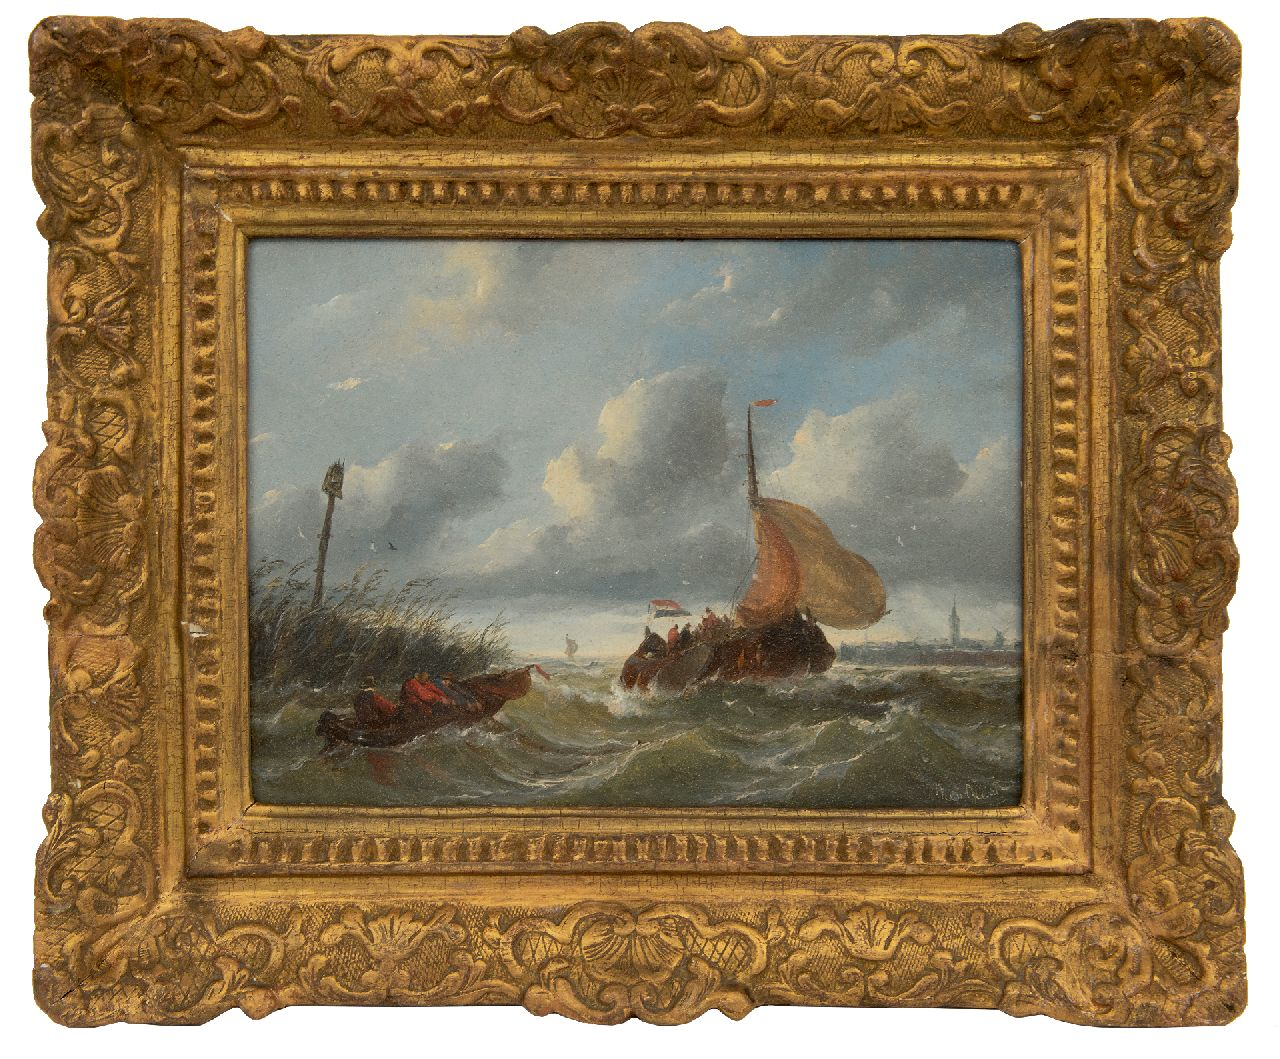 Beest A. van | Albertus van Beest | Paintings offered for sale | A boyer entering a harbour in stormy weather, oil on panel 23.5 x 33.6 cm, signed l.r.